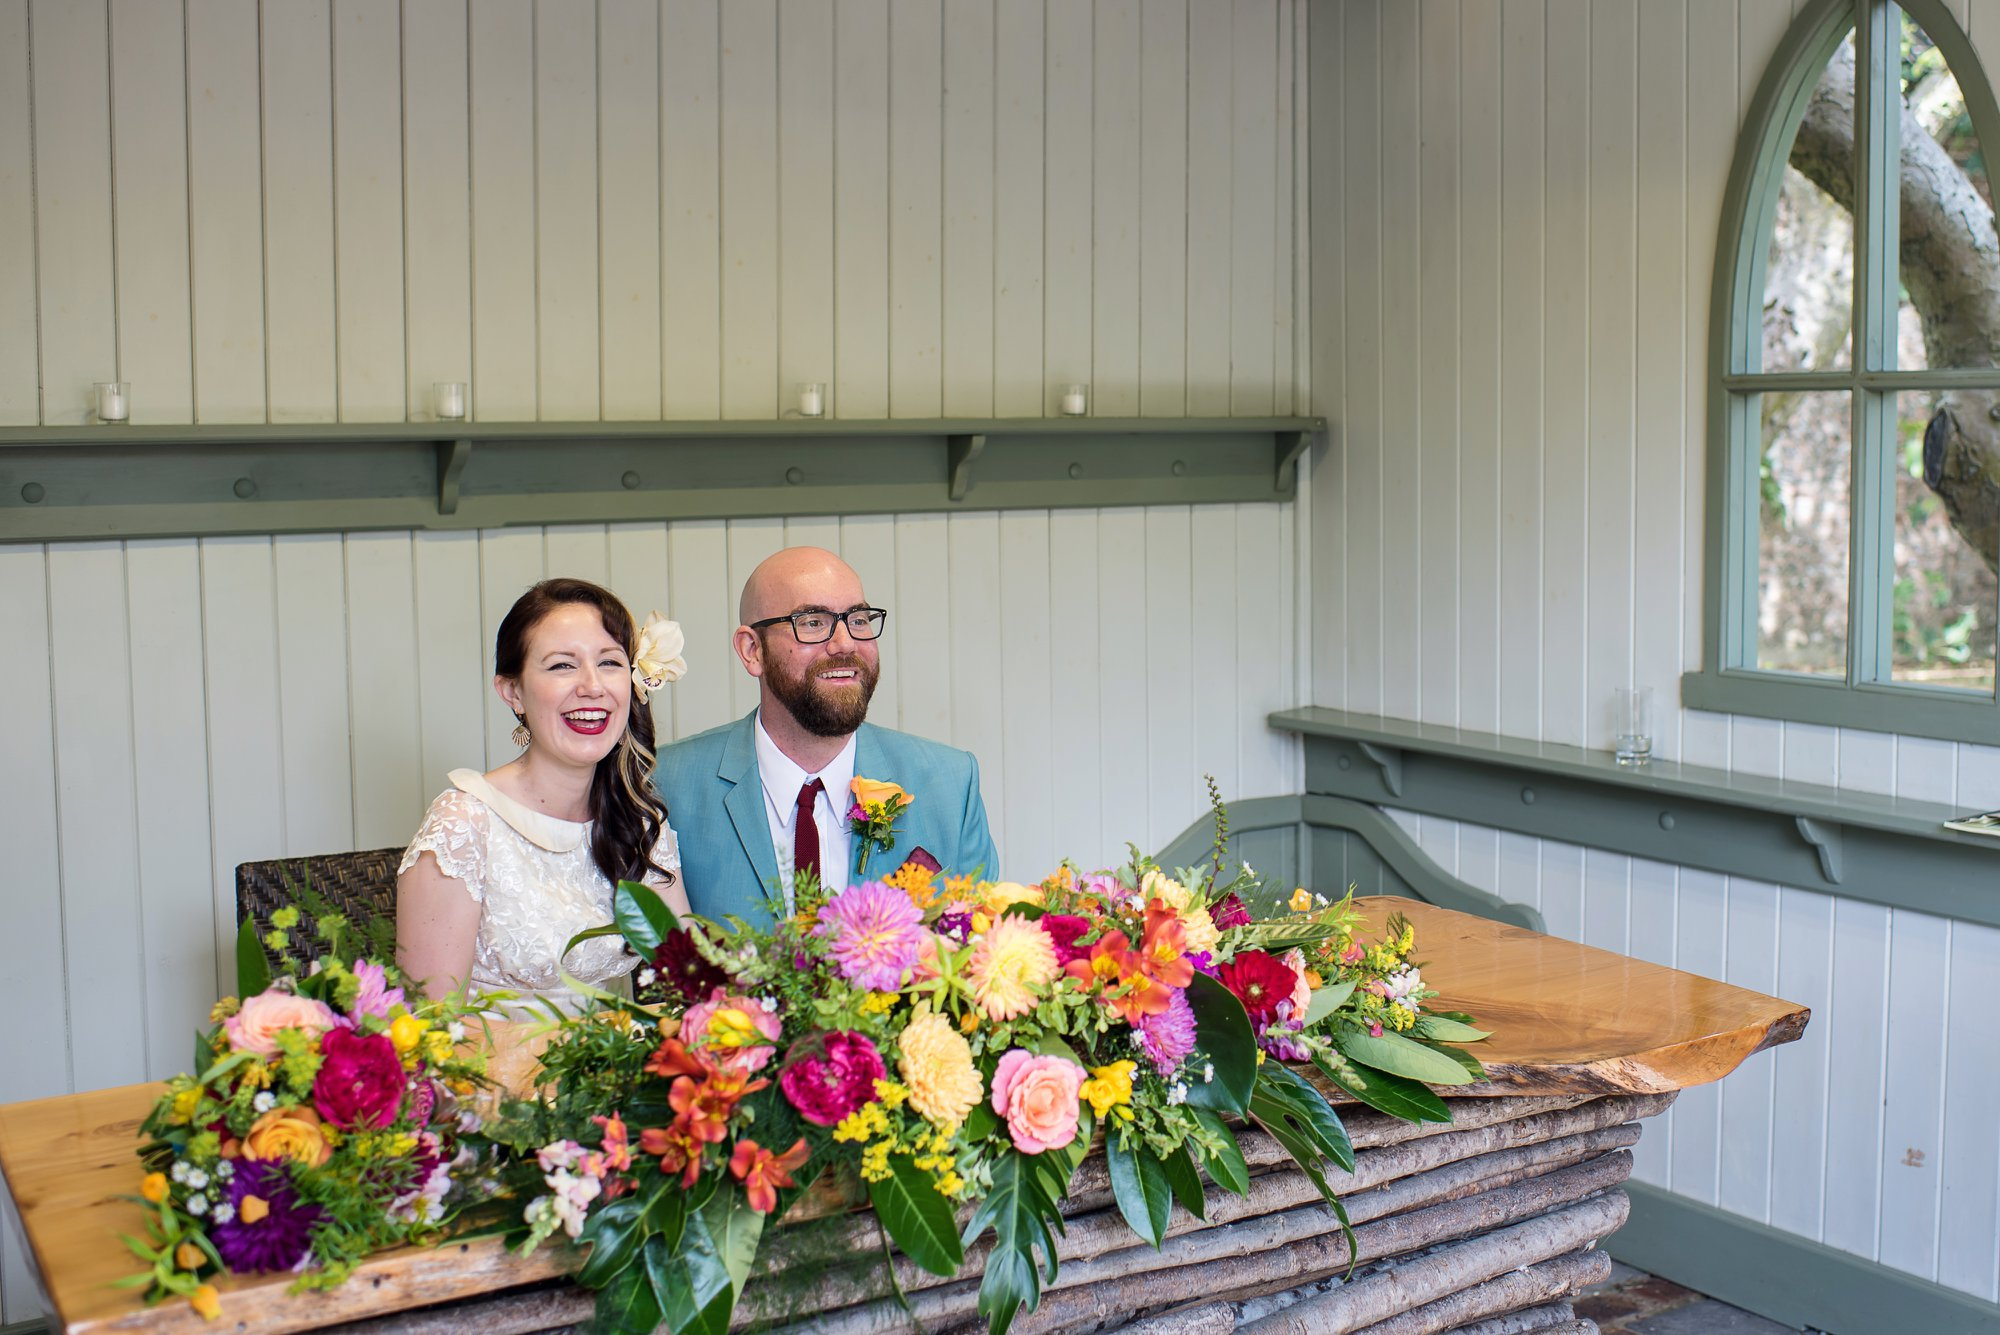 colourful outdoor wedding at Pangdean Barn. Bride and groom with bright flowers